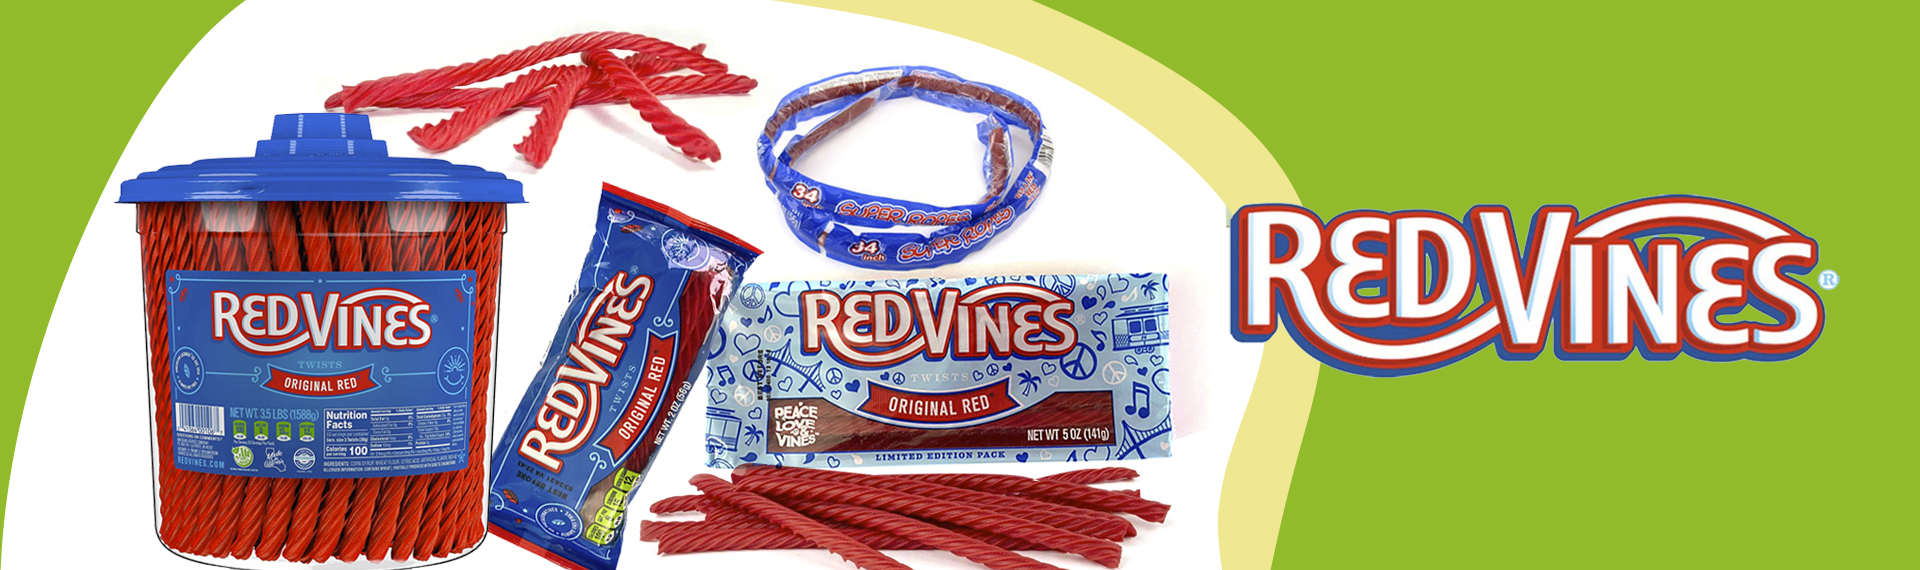 banner red vines mix